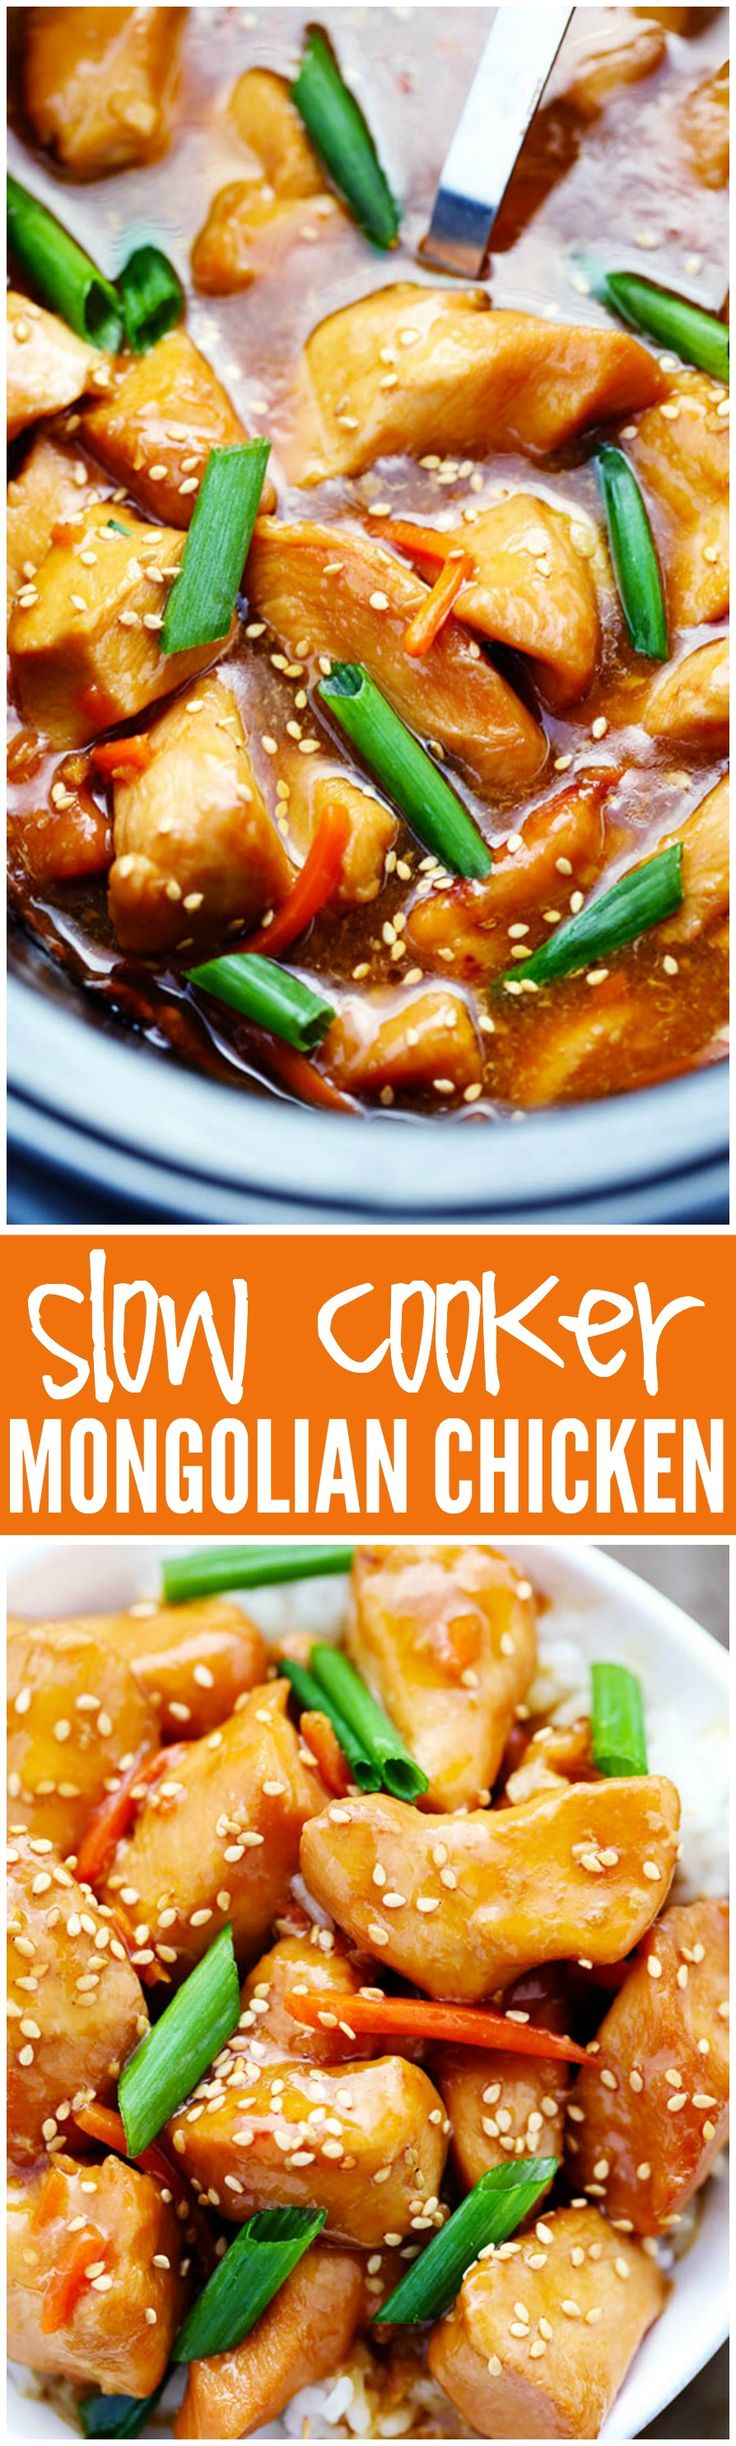 This Slow Cooker Mongolian Chicken is OUT OF THIS WORLD and a million times better than takeout! therecipecritic.com